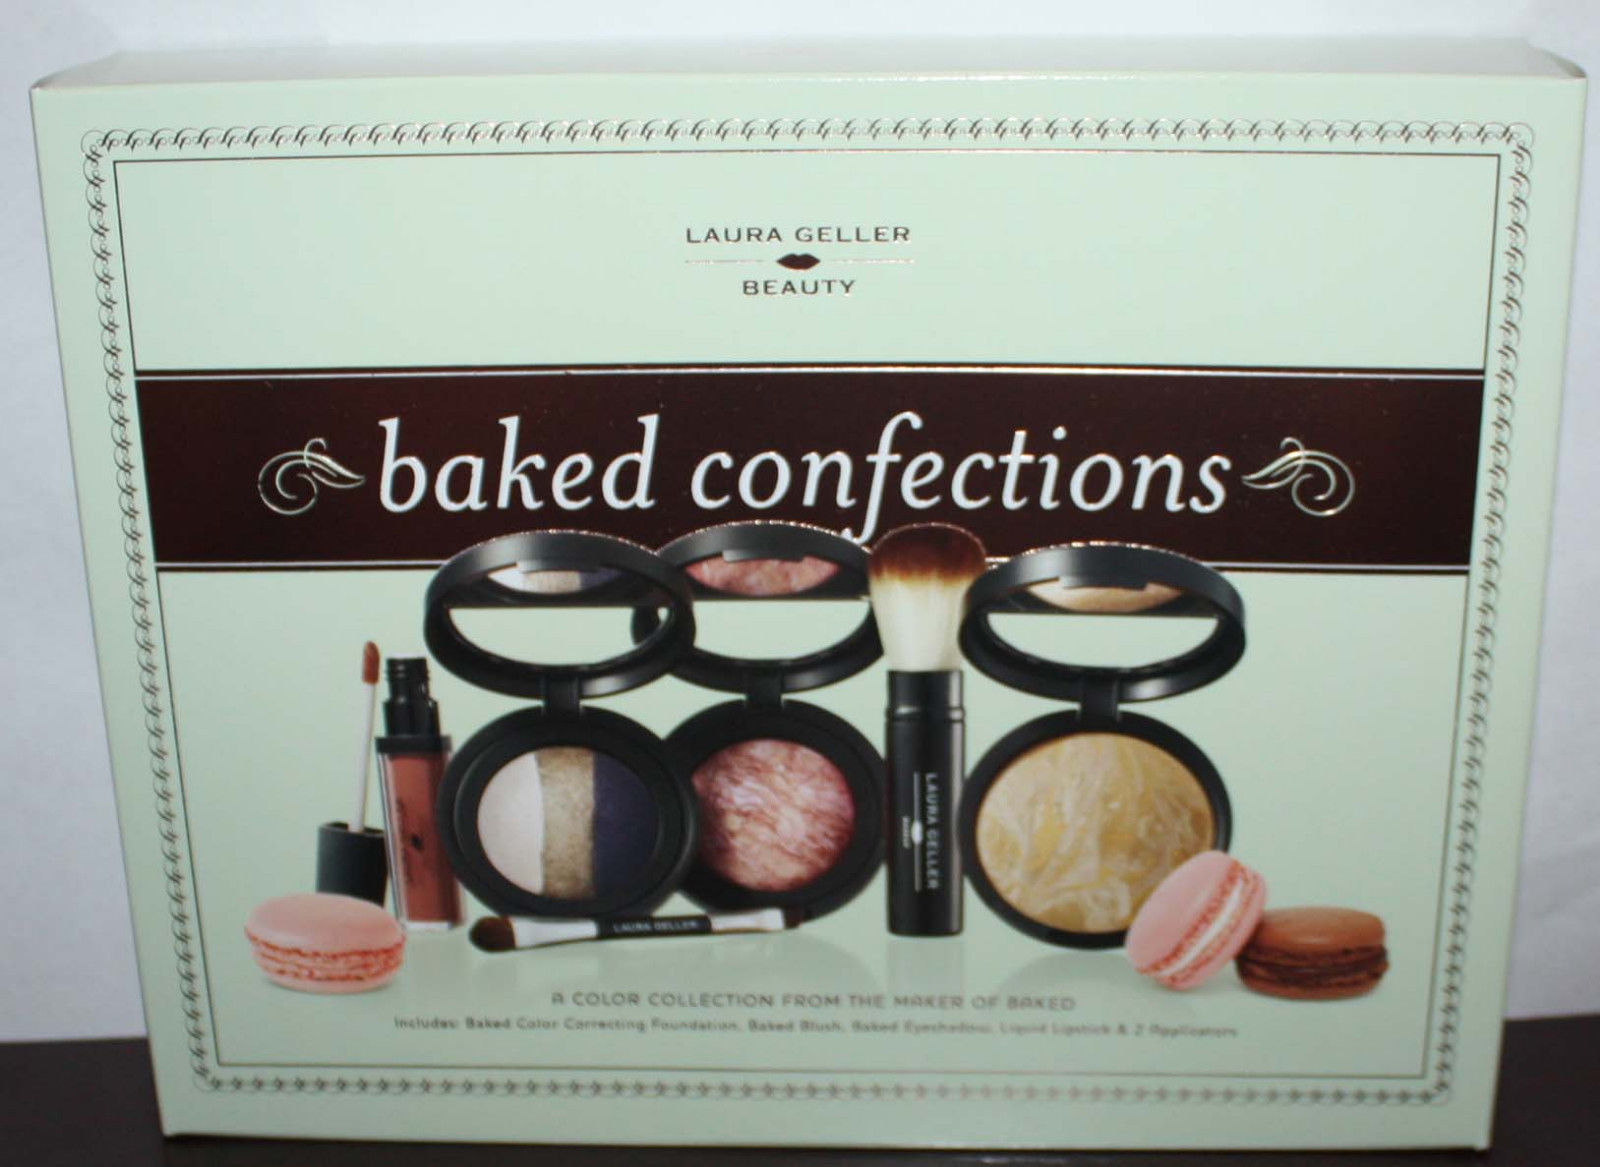 Laura Geller BAKED CONFECTIONS Foundation/Blush/Eyeshadow/Lipstick/Applicators 11381